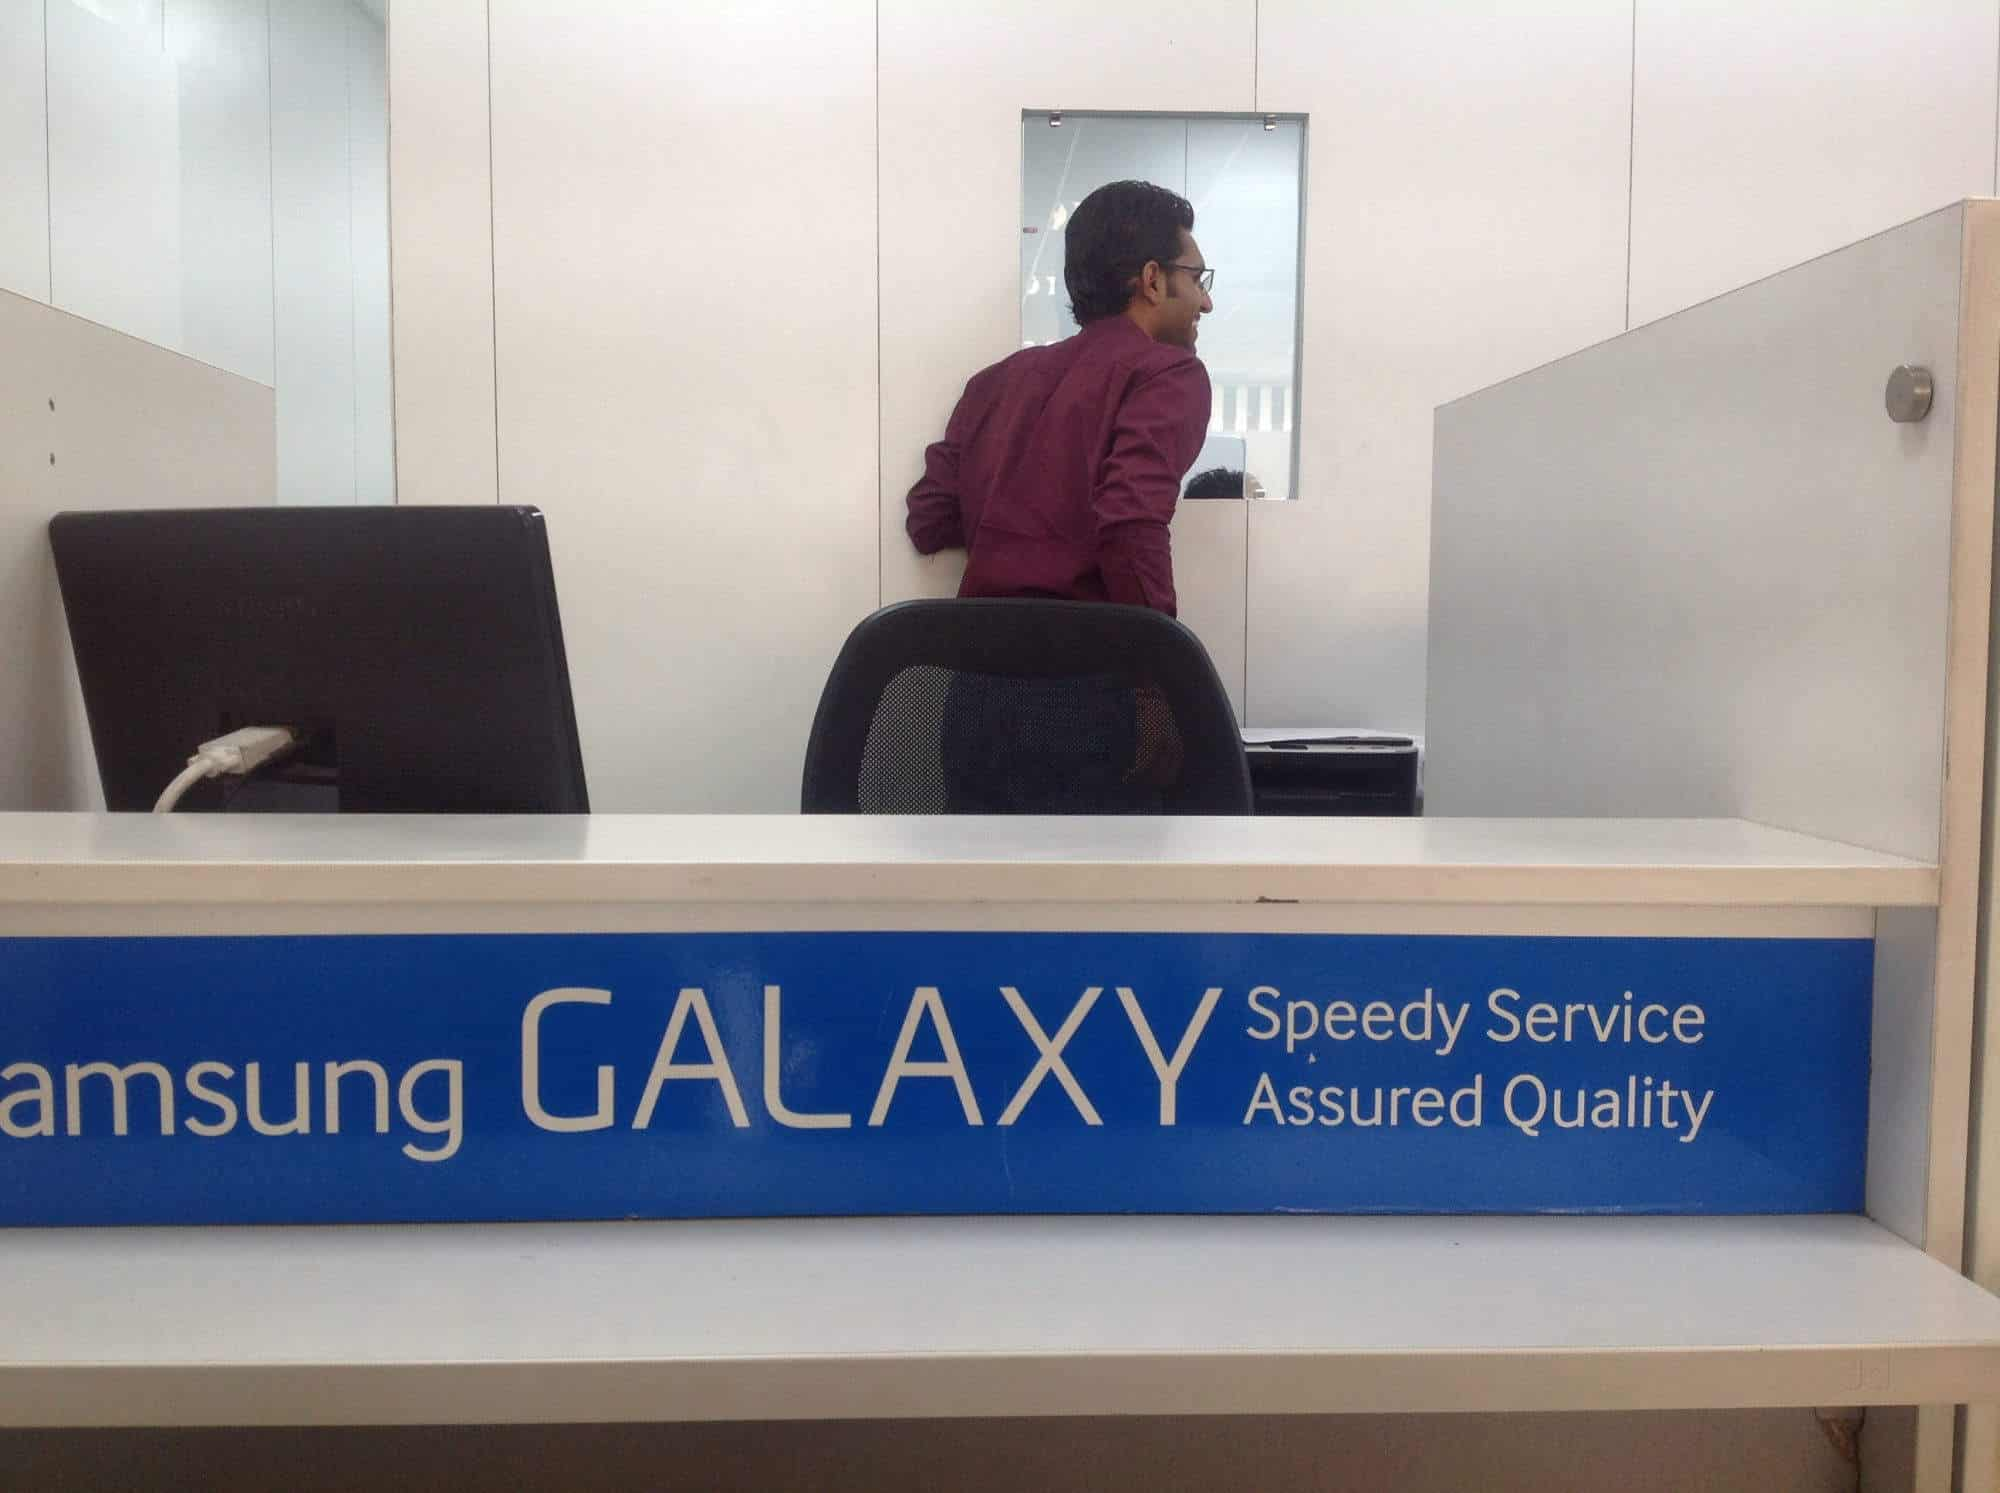 Samsung Service Center Costumer Care, Vaishali Nagar   Mobile Phone Repair  U0026 Services Samsung In Ajmer   Justdial